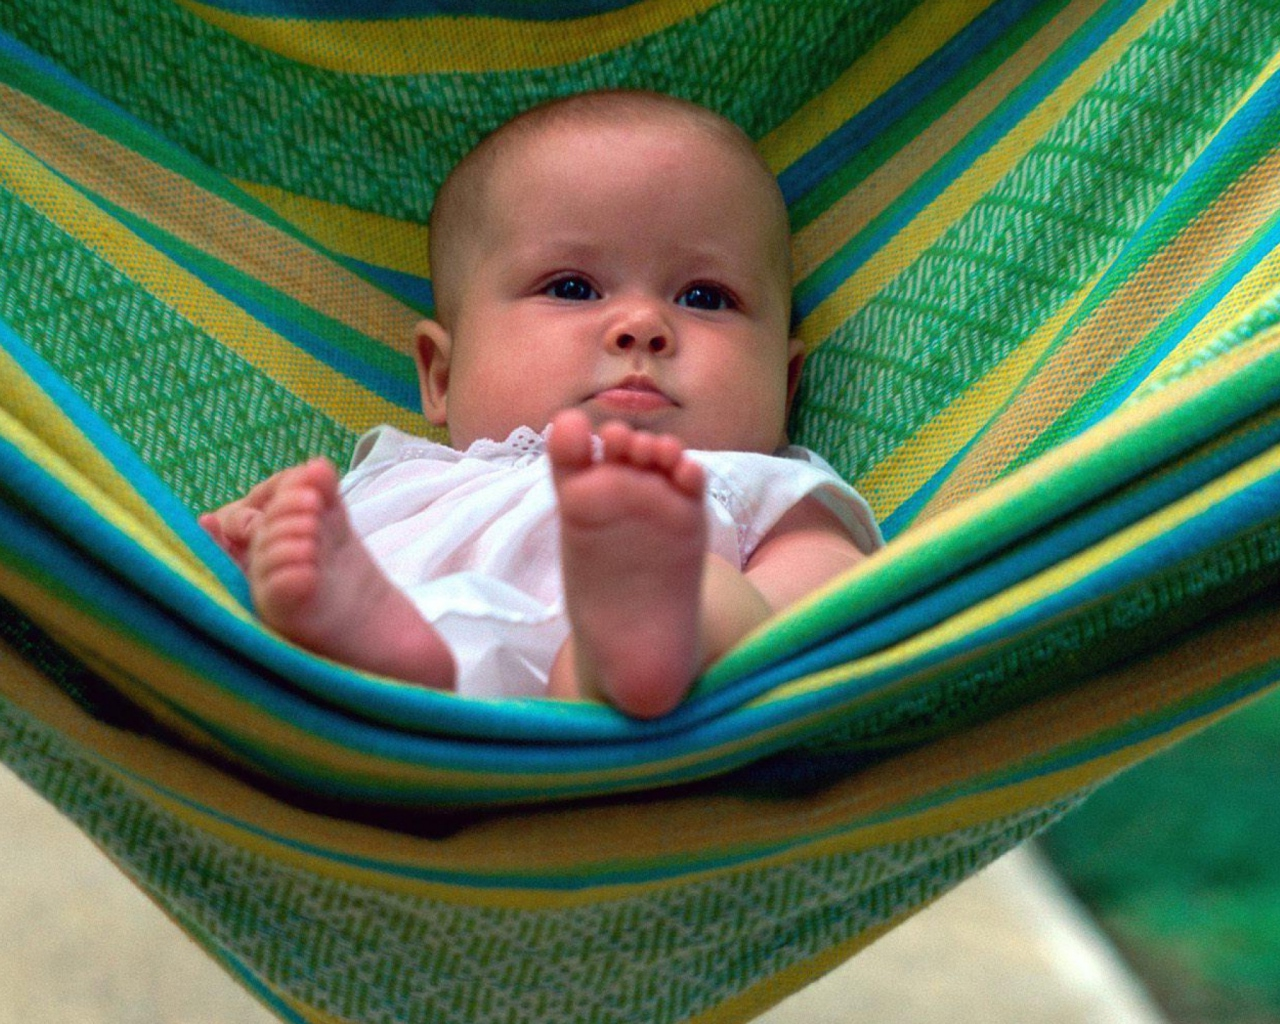 baby_blue_eyes_hammock_lie_63401_1280x1024